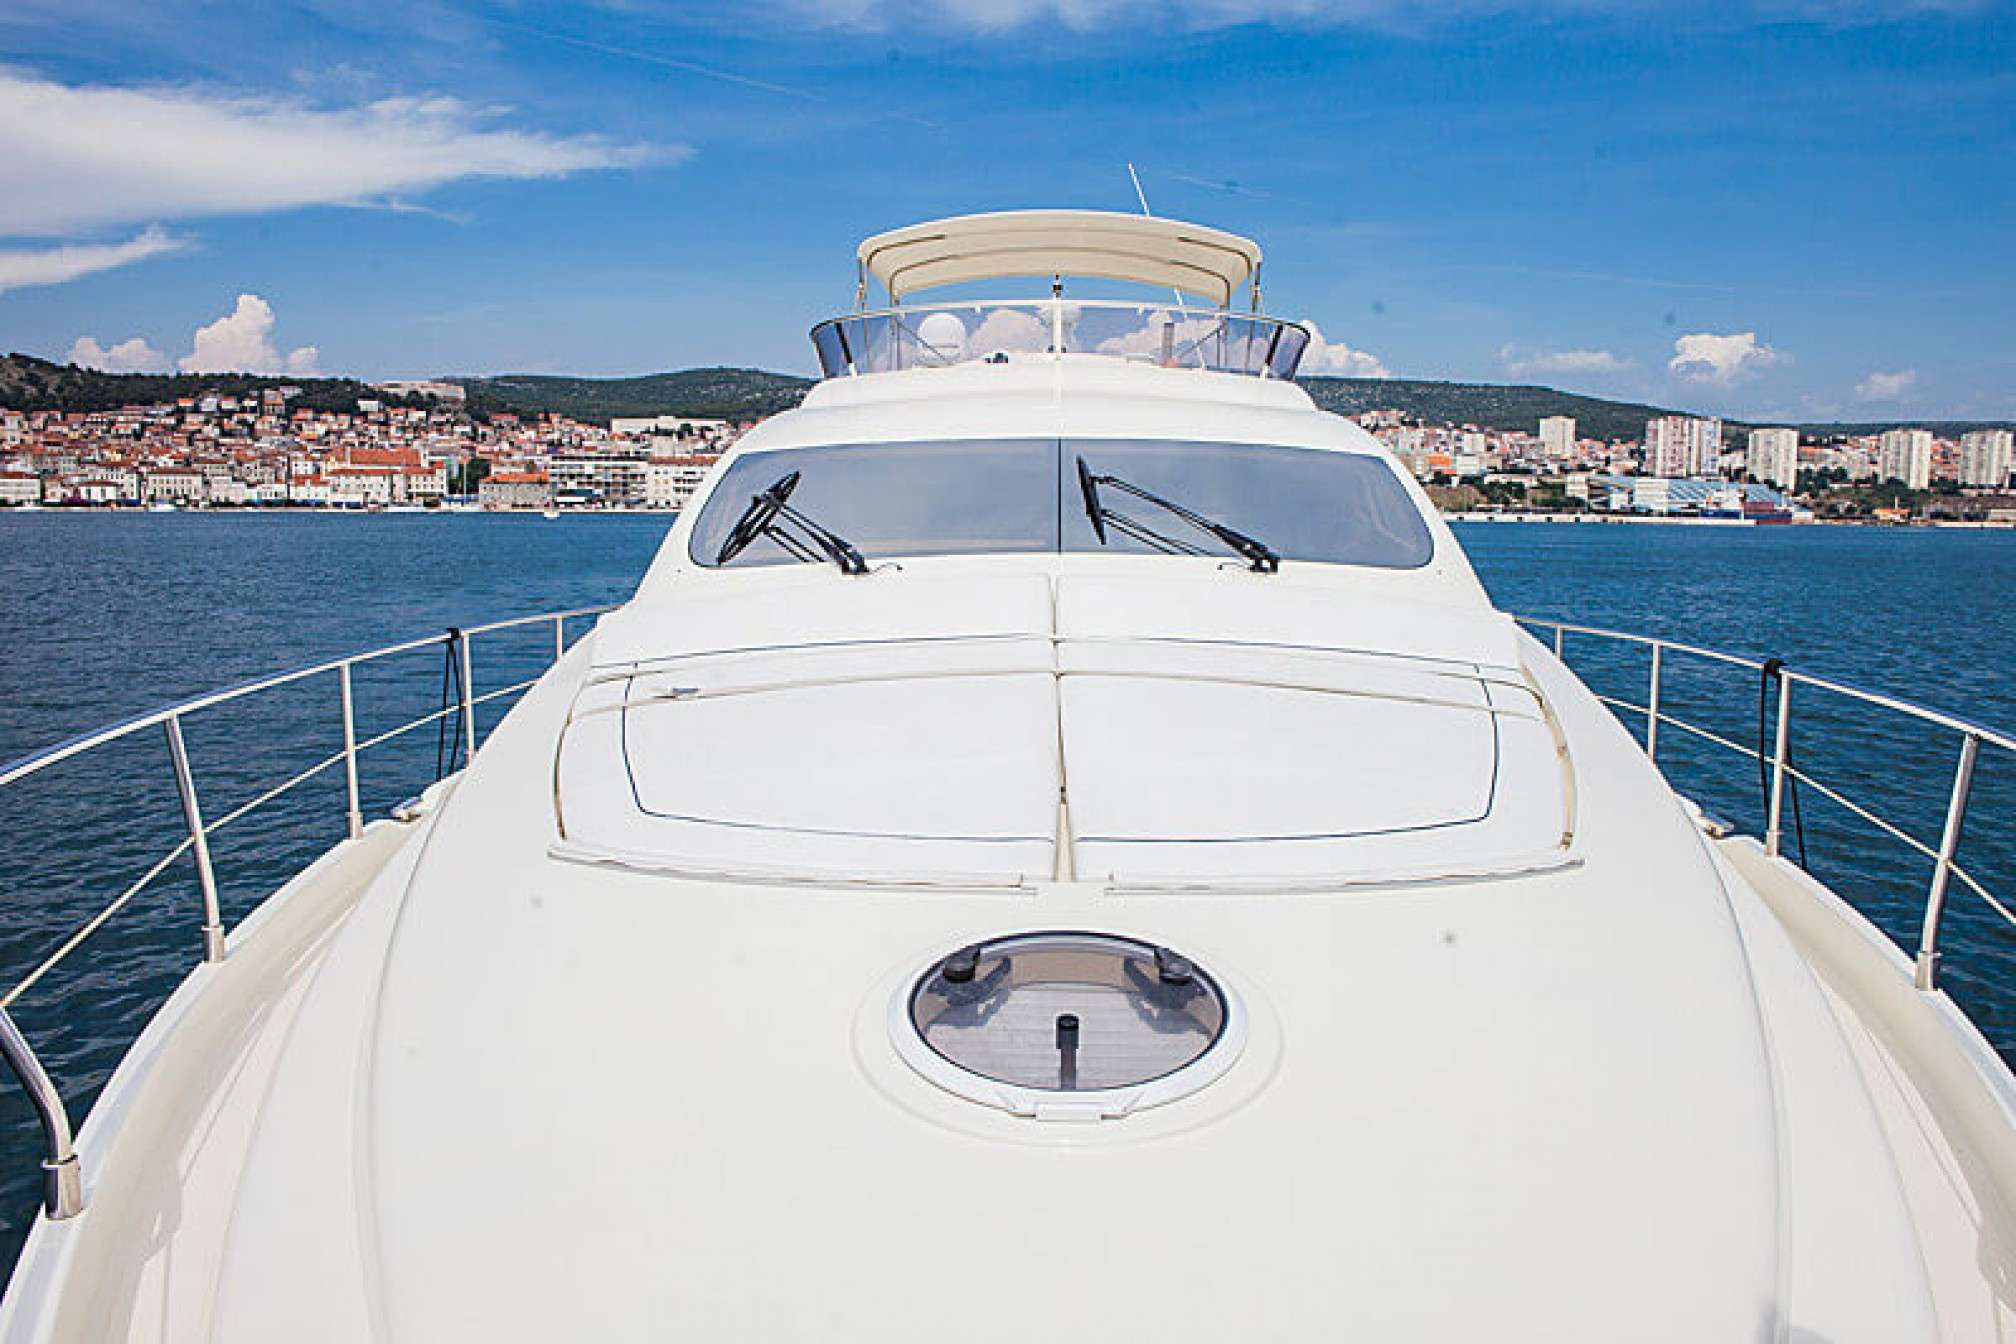 Aicon 56 Fly yacht charter deck